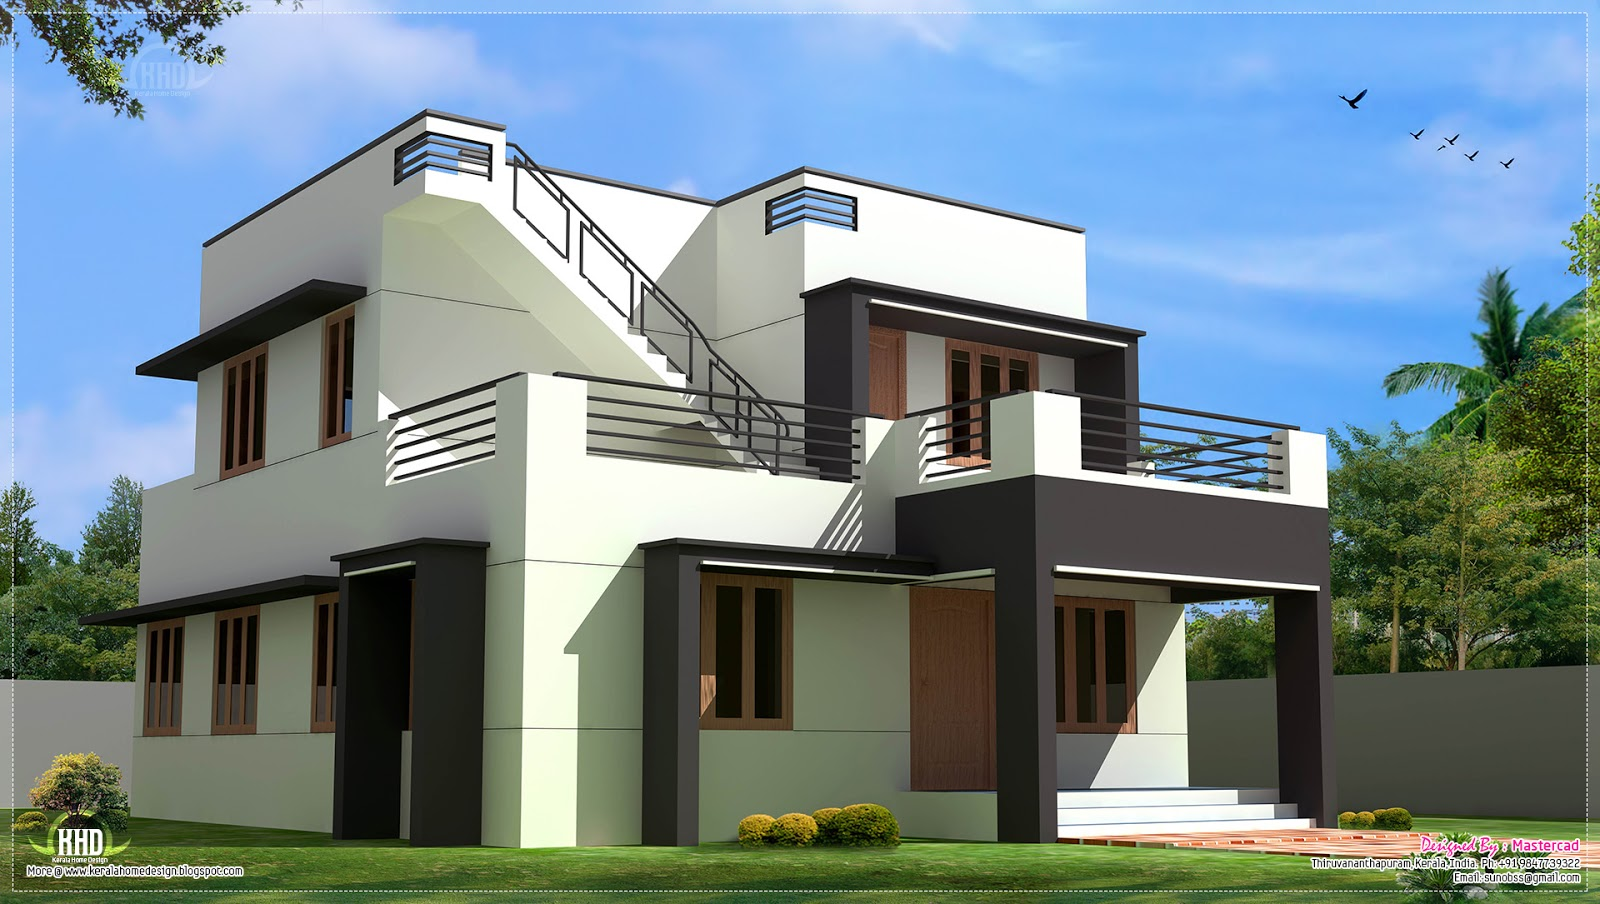 Modern house design in 1700 kerala home design for Modern home design ideas